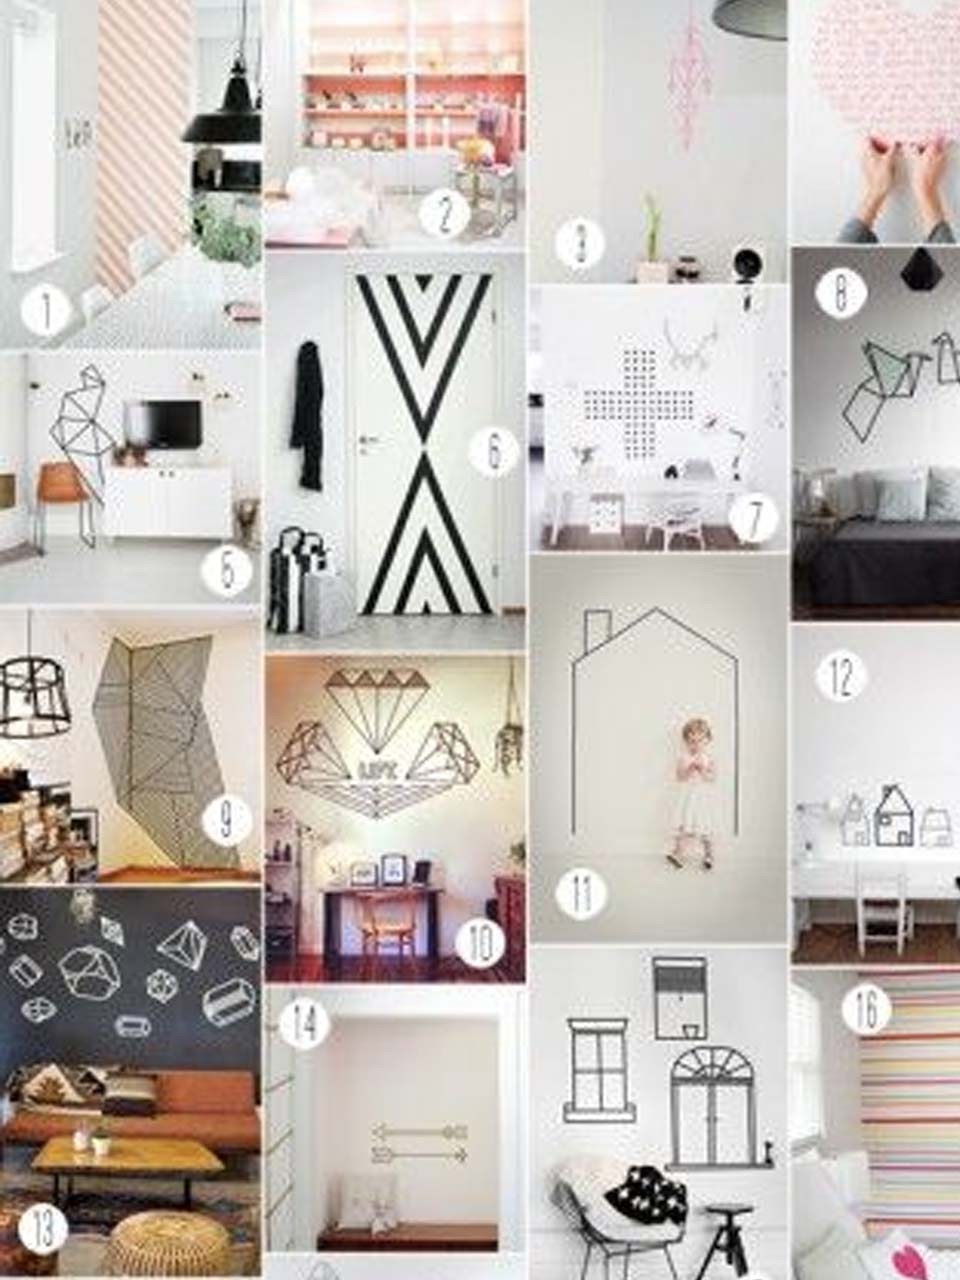 15 manualidades para decorar paredes - Decorar paredes dormitorio juvenil ...